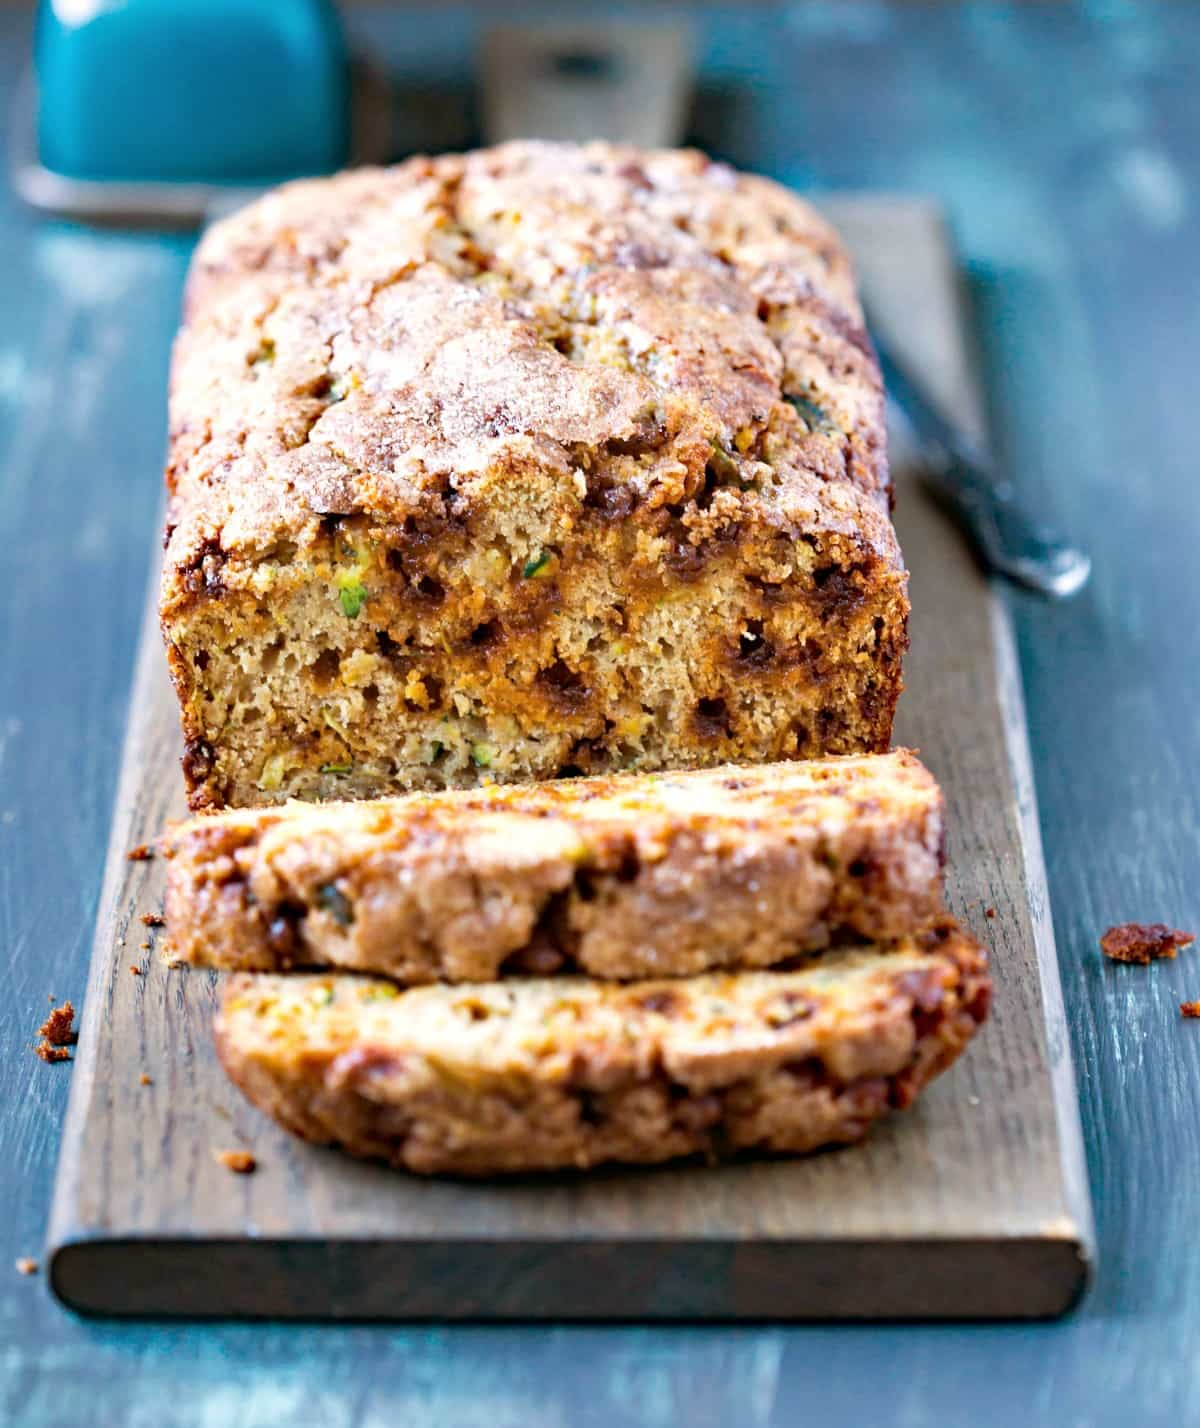 Sliced loaf of Cinnamon Chip Whole Wheat Zucchini Bread